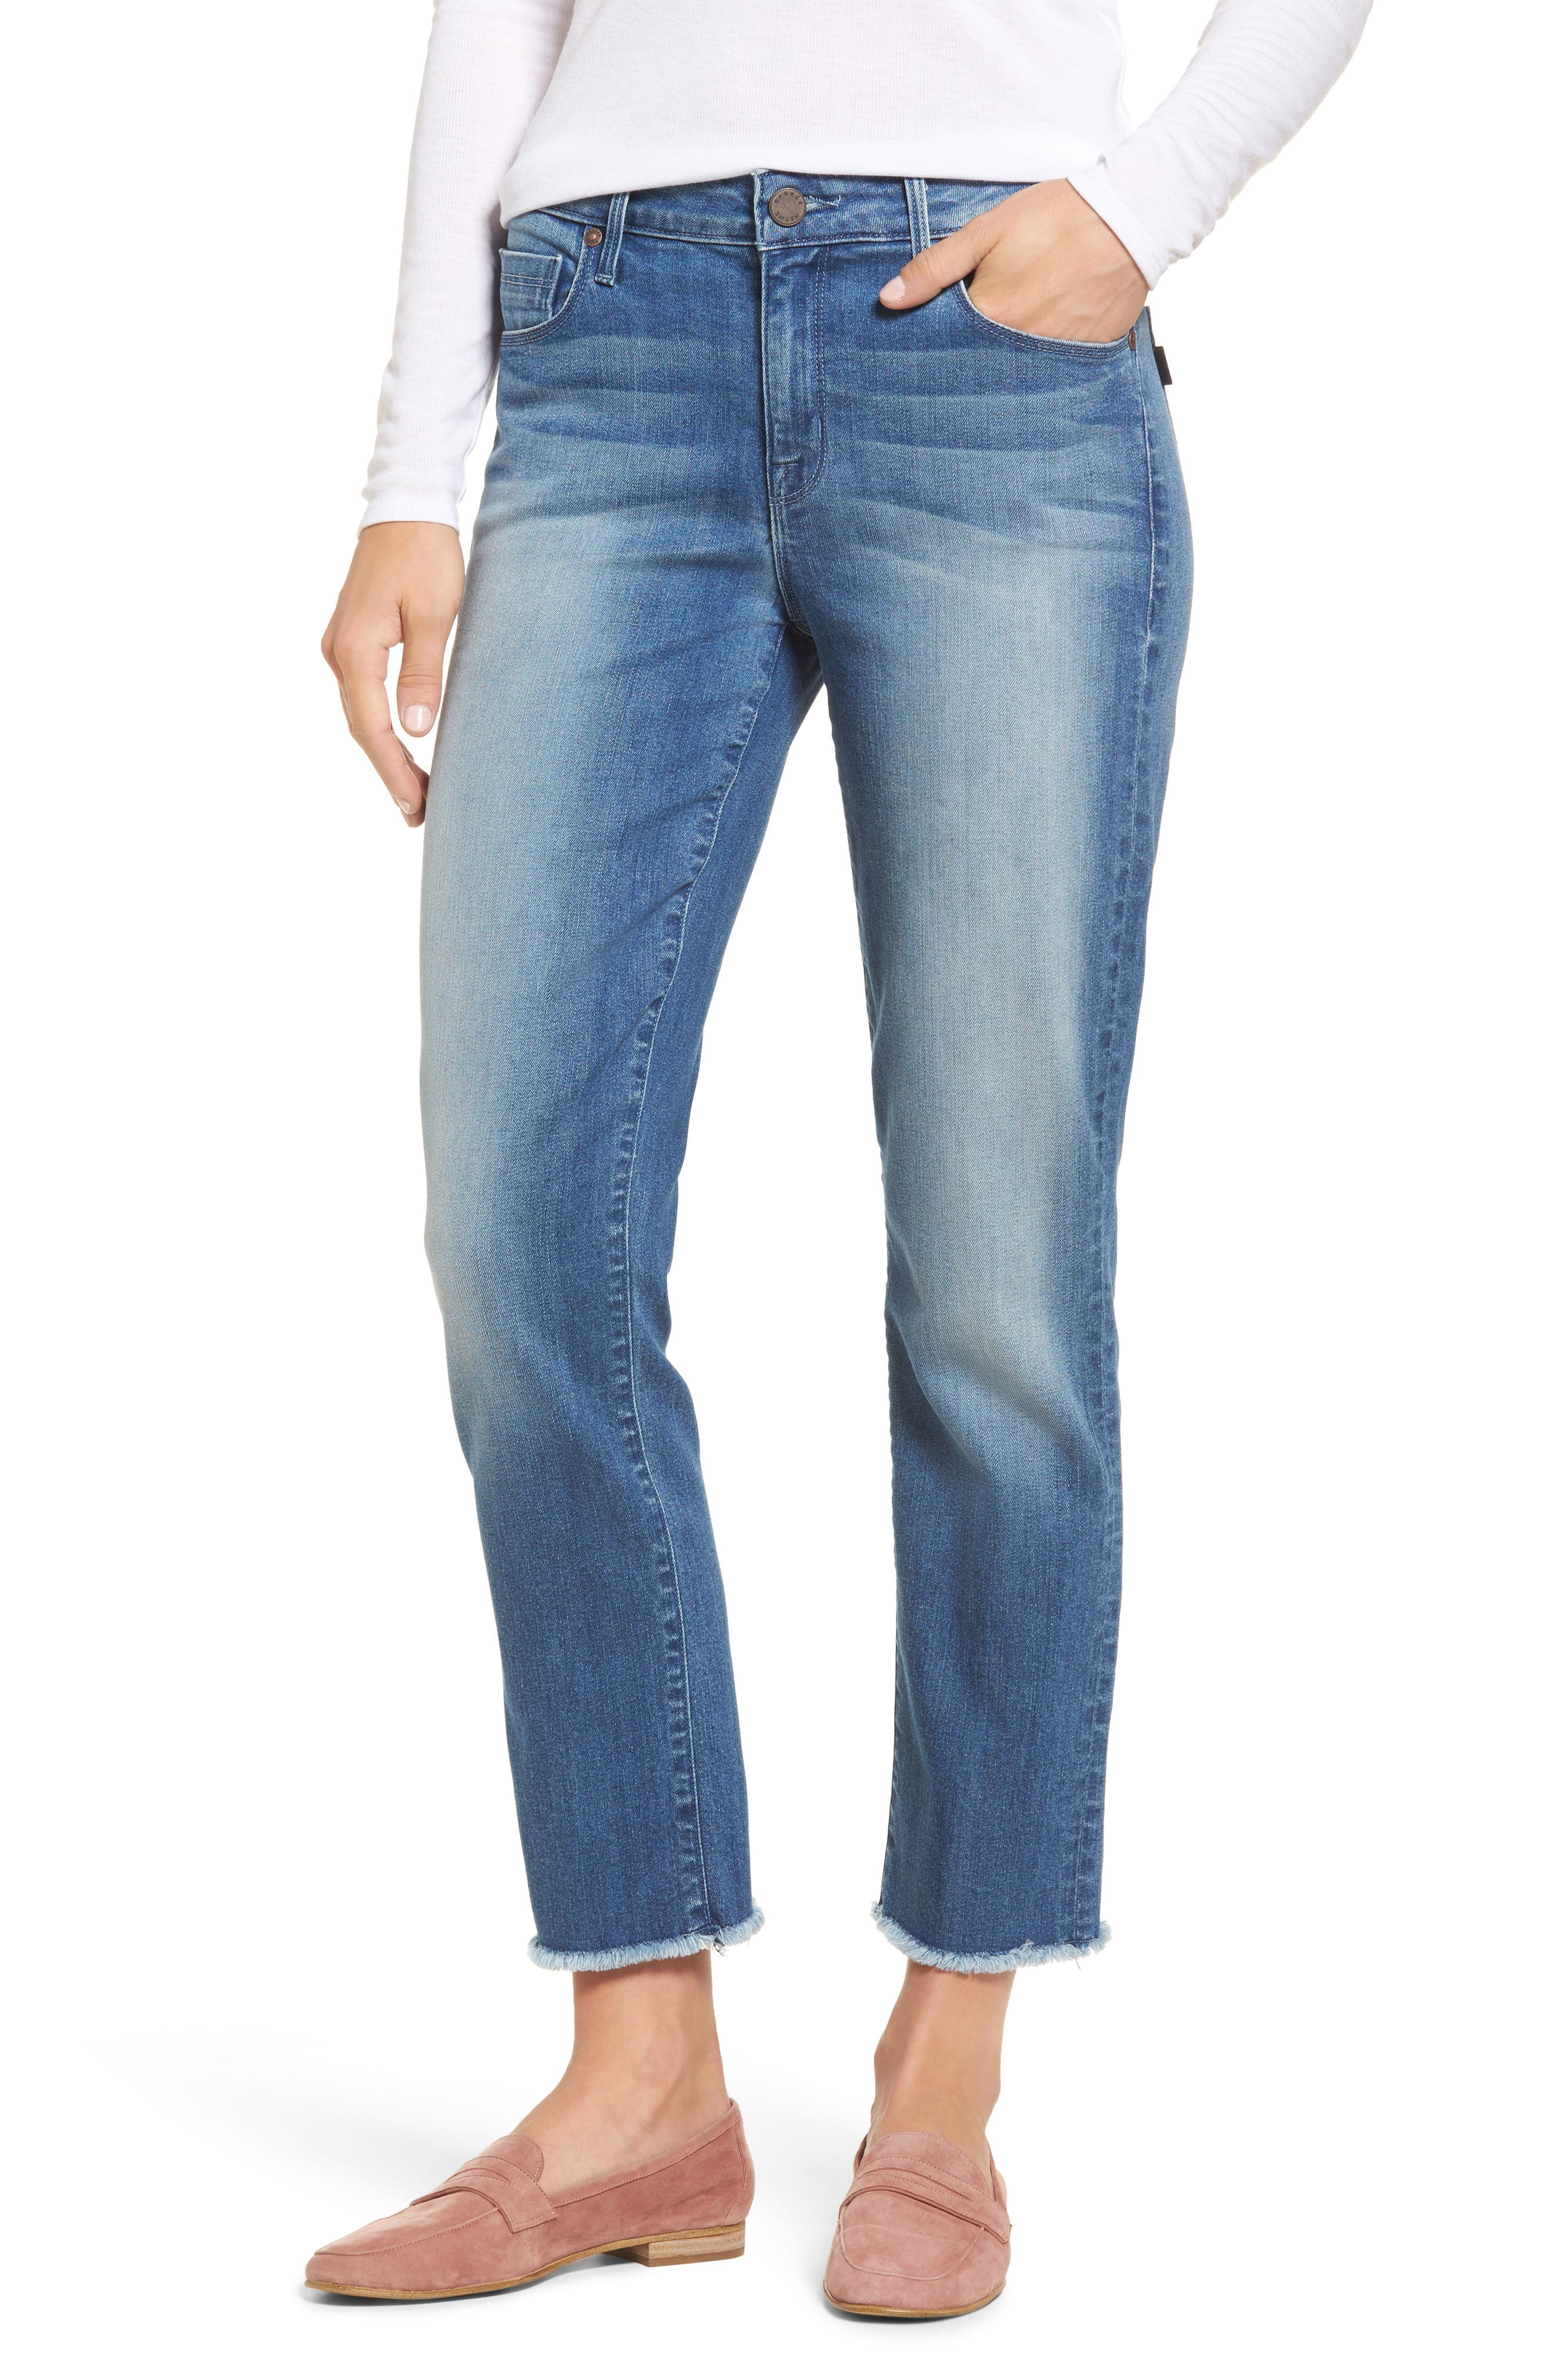 Alternate Image 1 Selected - PARKER SMITH Raw Edge Ankle Straight Jeans (Sea Coast)